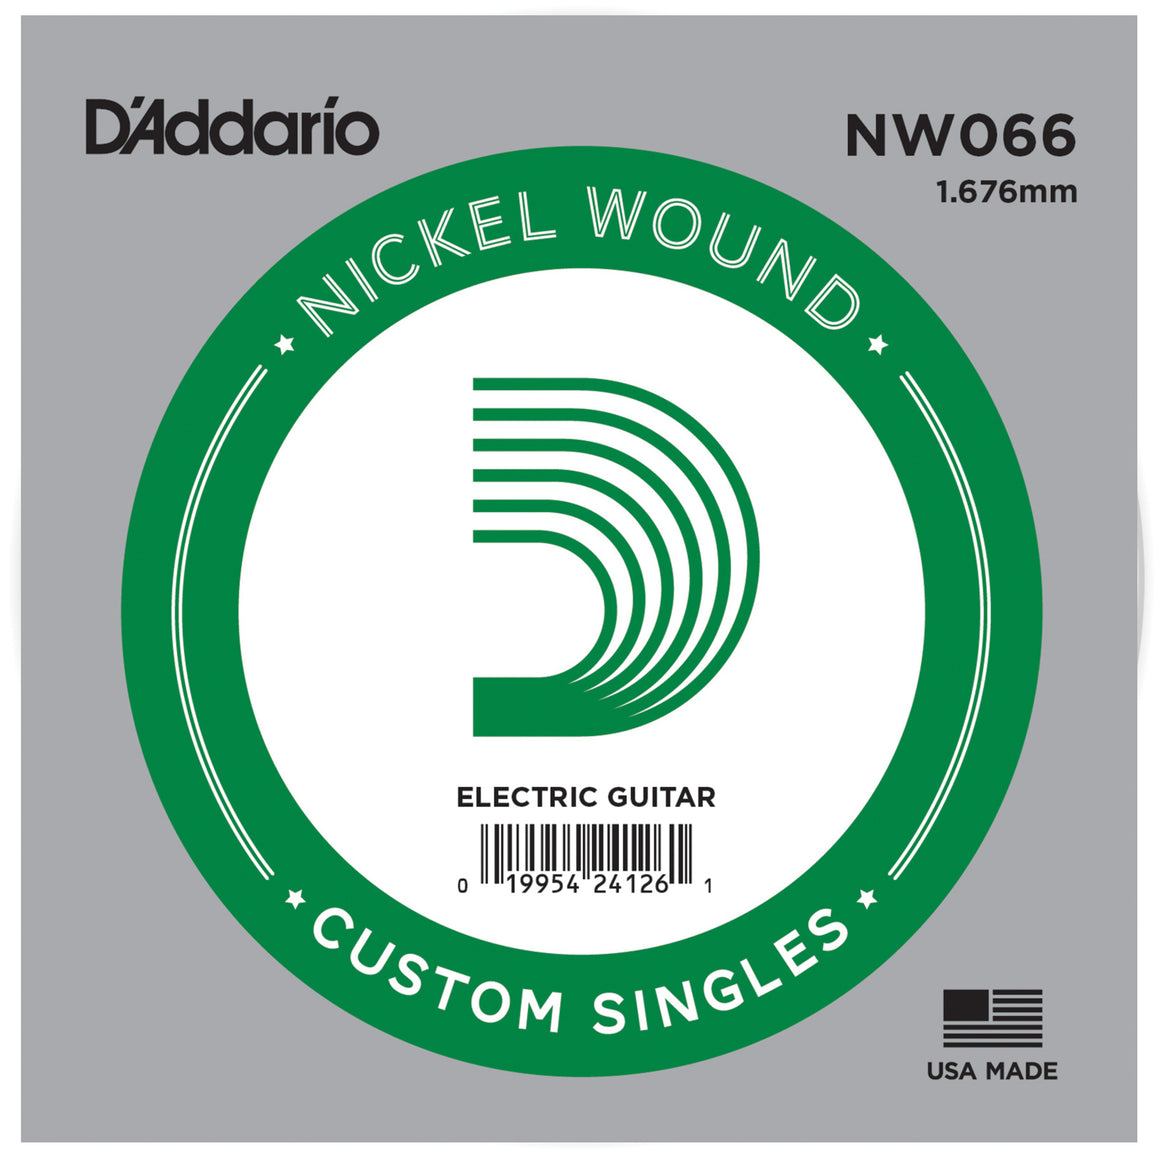 D'Addario NW066 Nickel Wound Single Guitar String .066